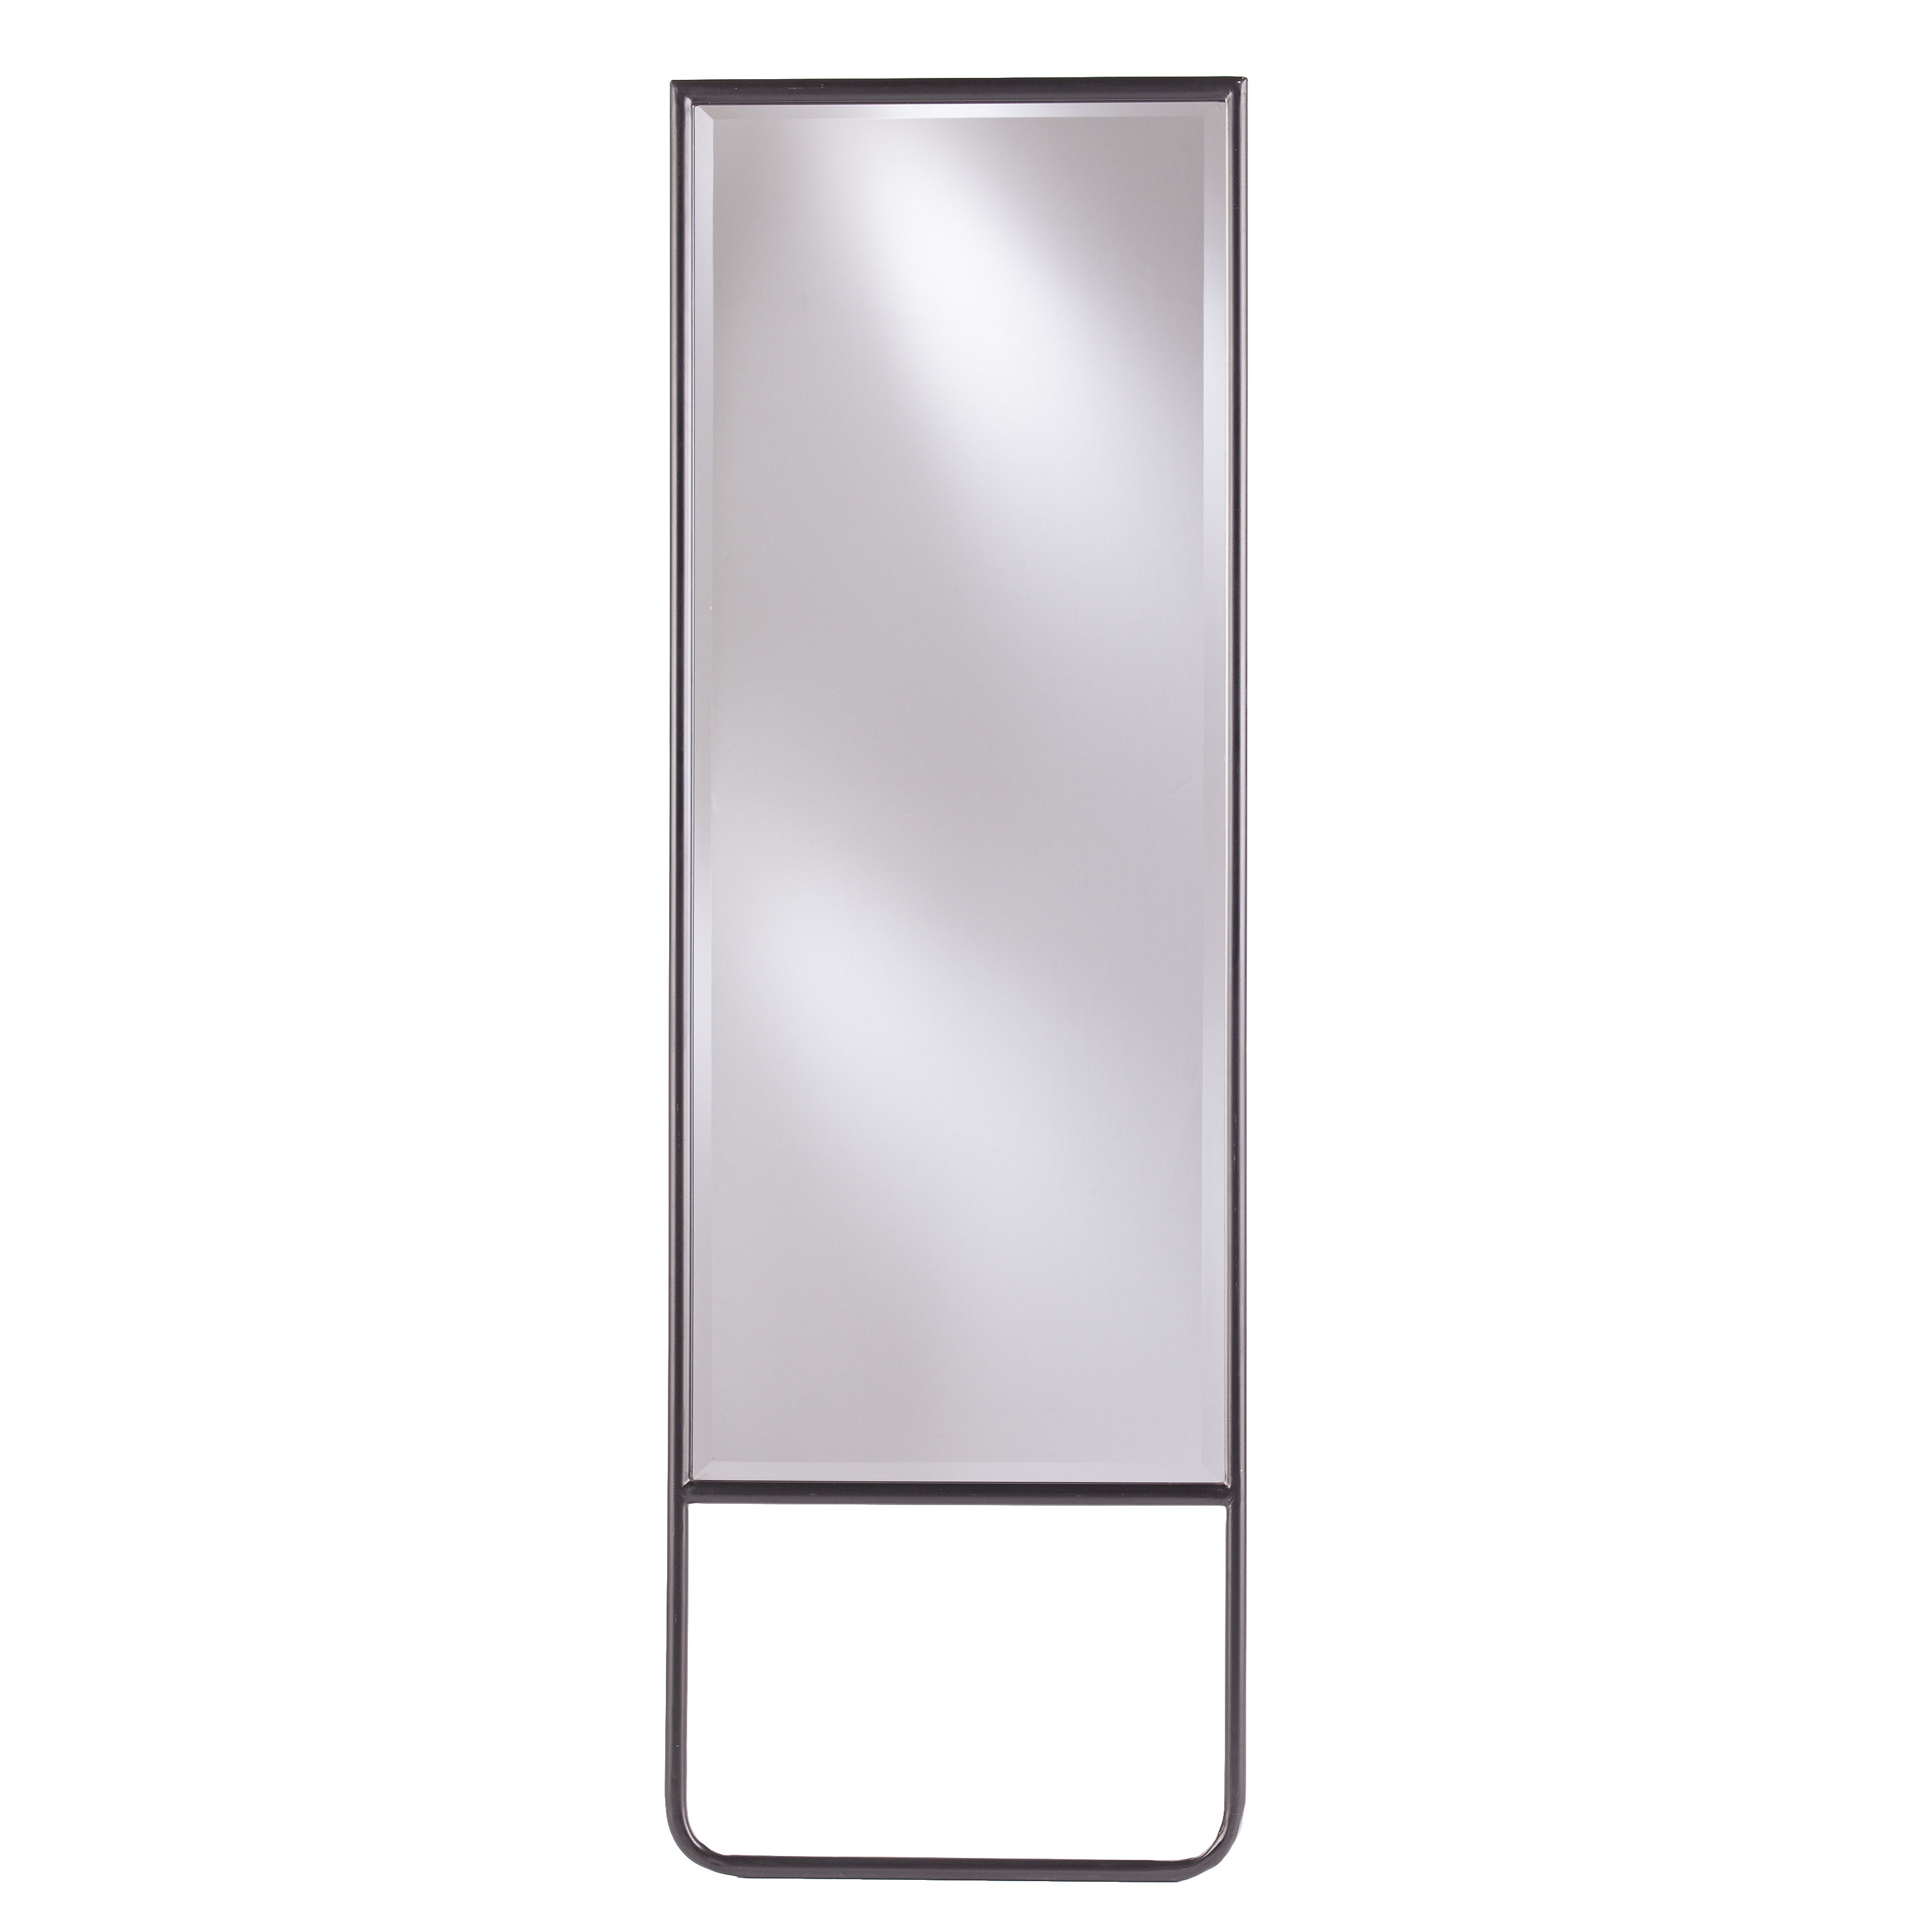 Karcher Leaning Full Length Mirror Pertaining To Most Current Full Length White Wall Mirrors (View 9 of 20)